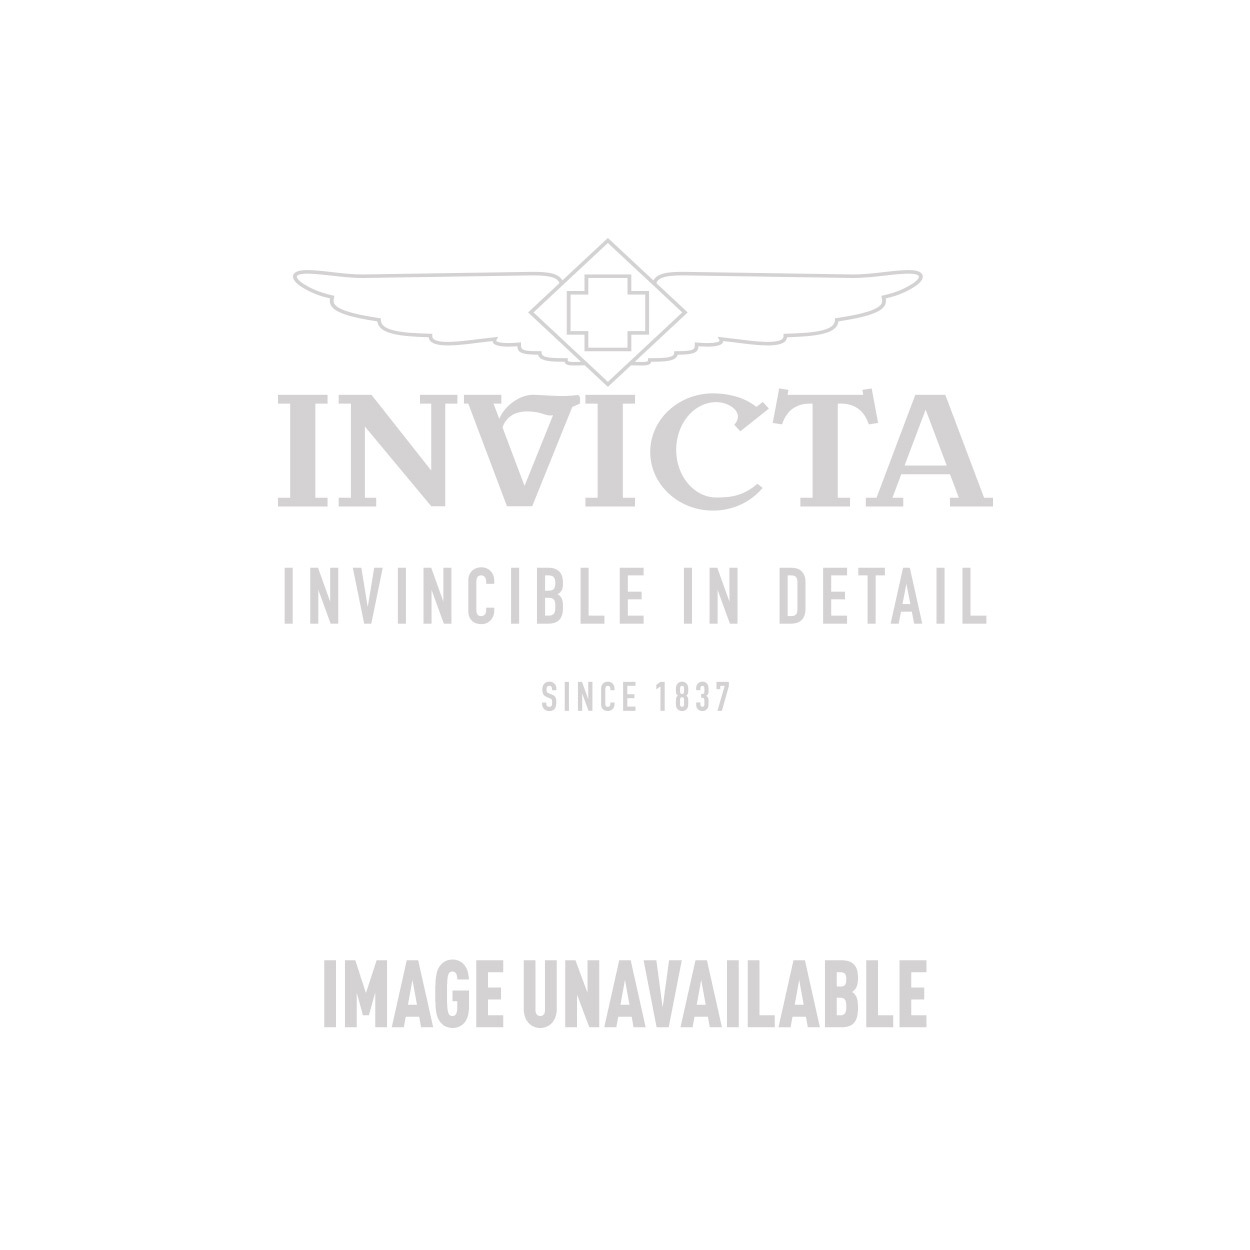 Invicta Watch Case DC8YEL